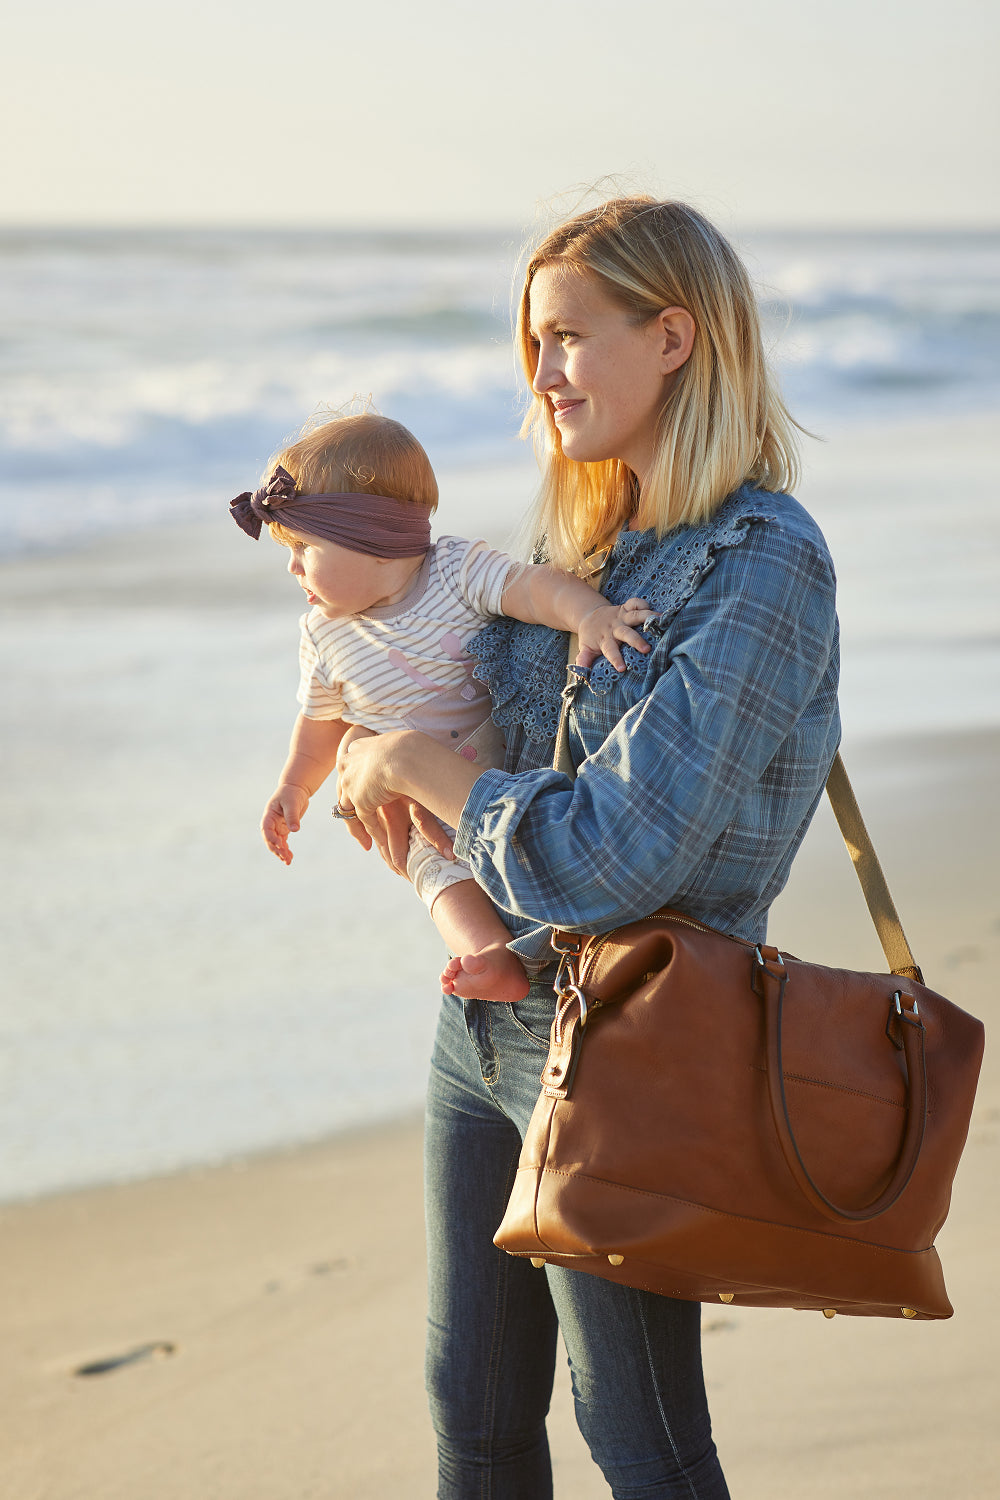 Why a Leather Diaper Bag?